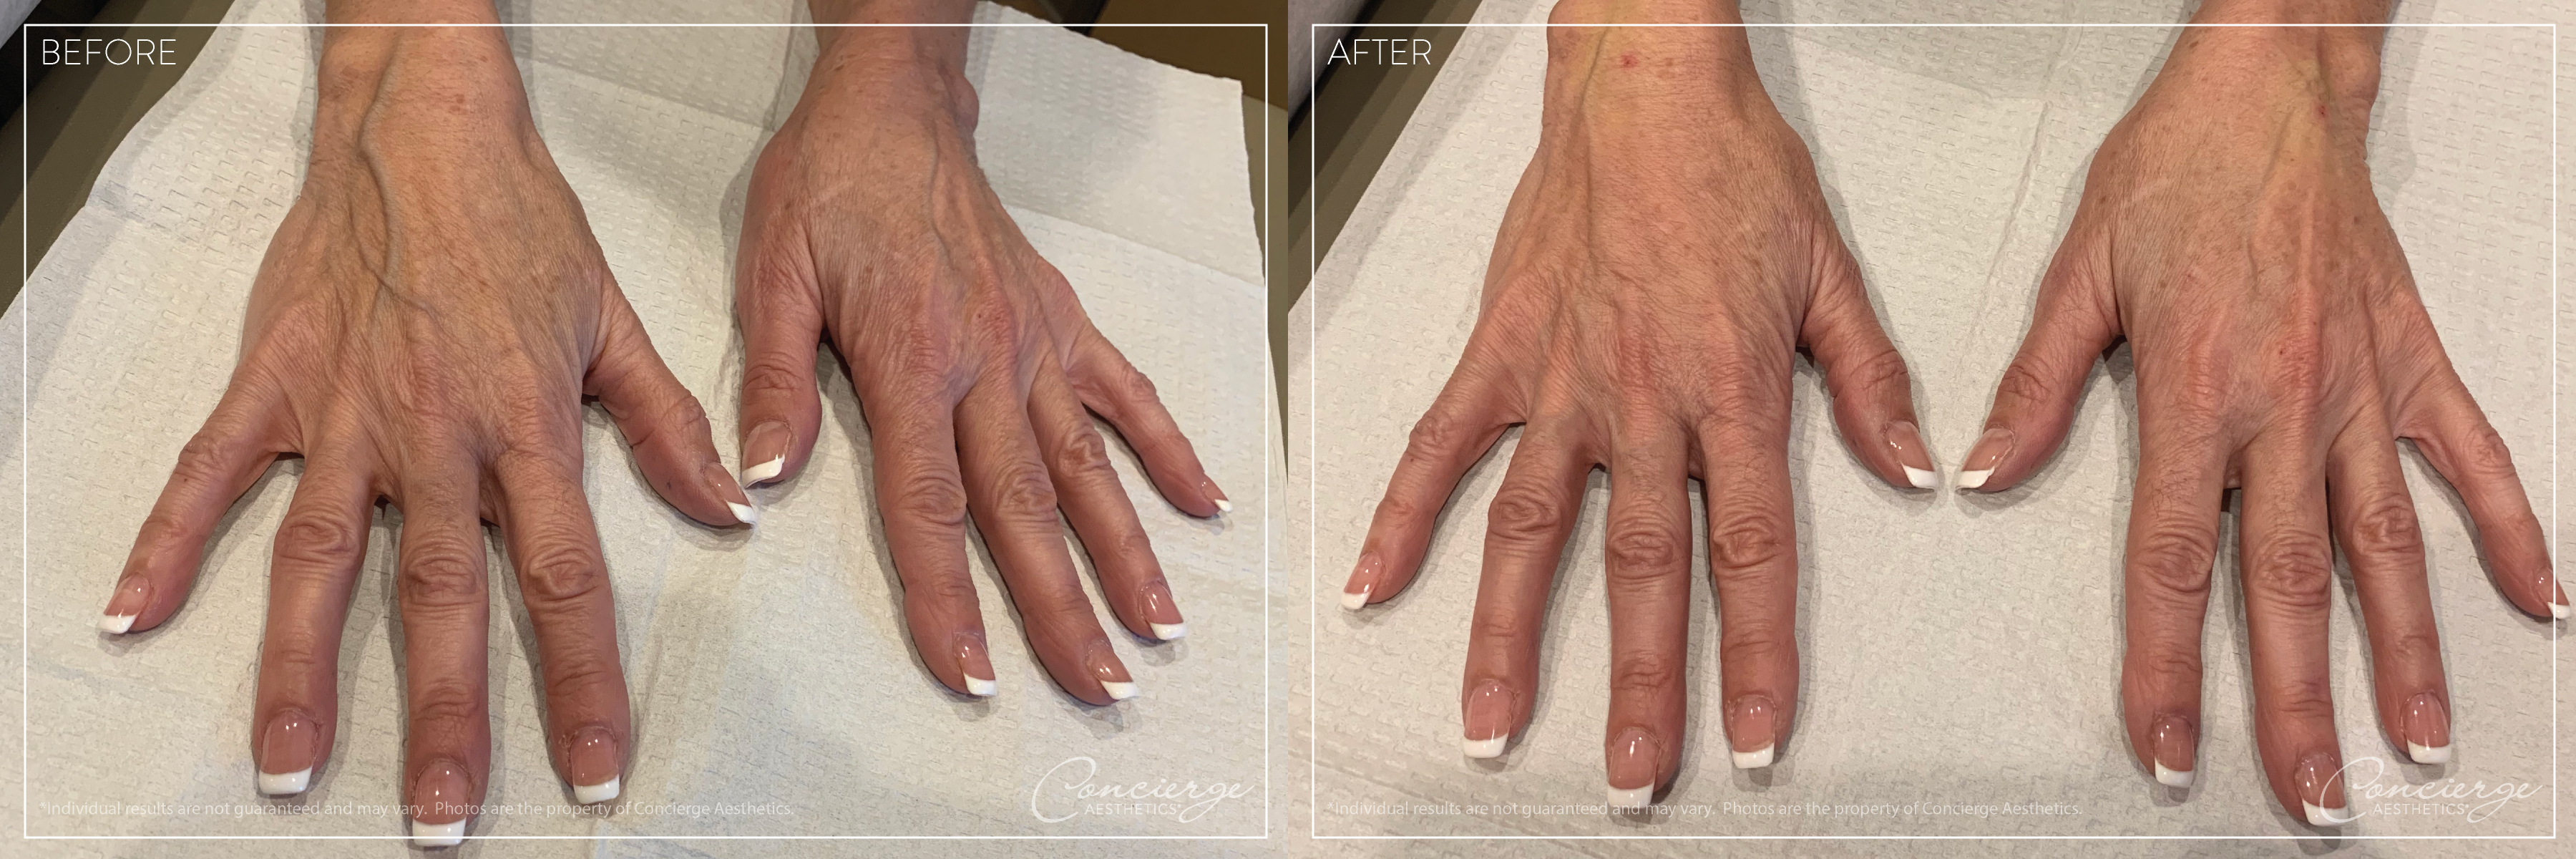 Hand Rejuvenation - Juvederm Ultra Plus - Concierge Aesthetics - Irvine